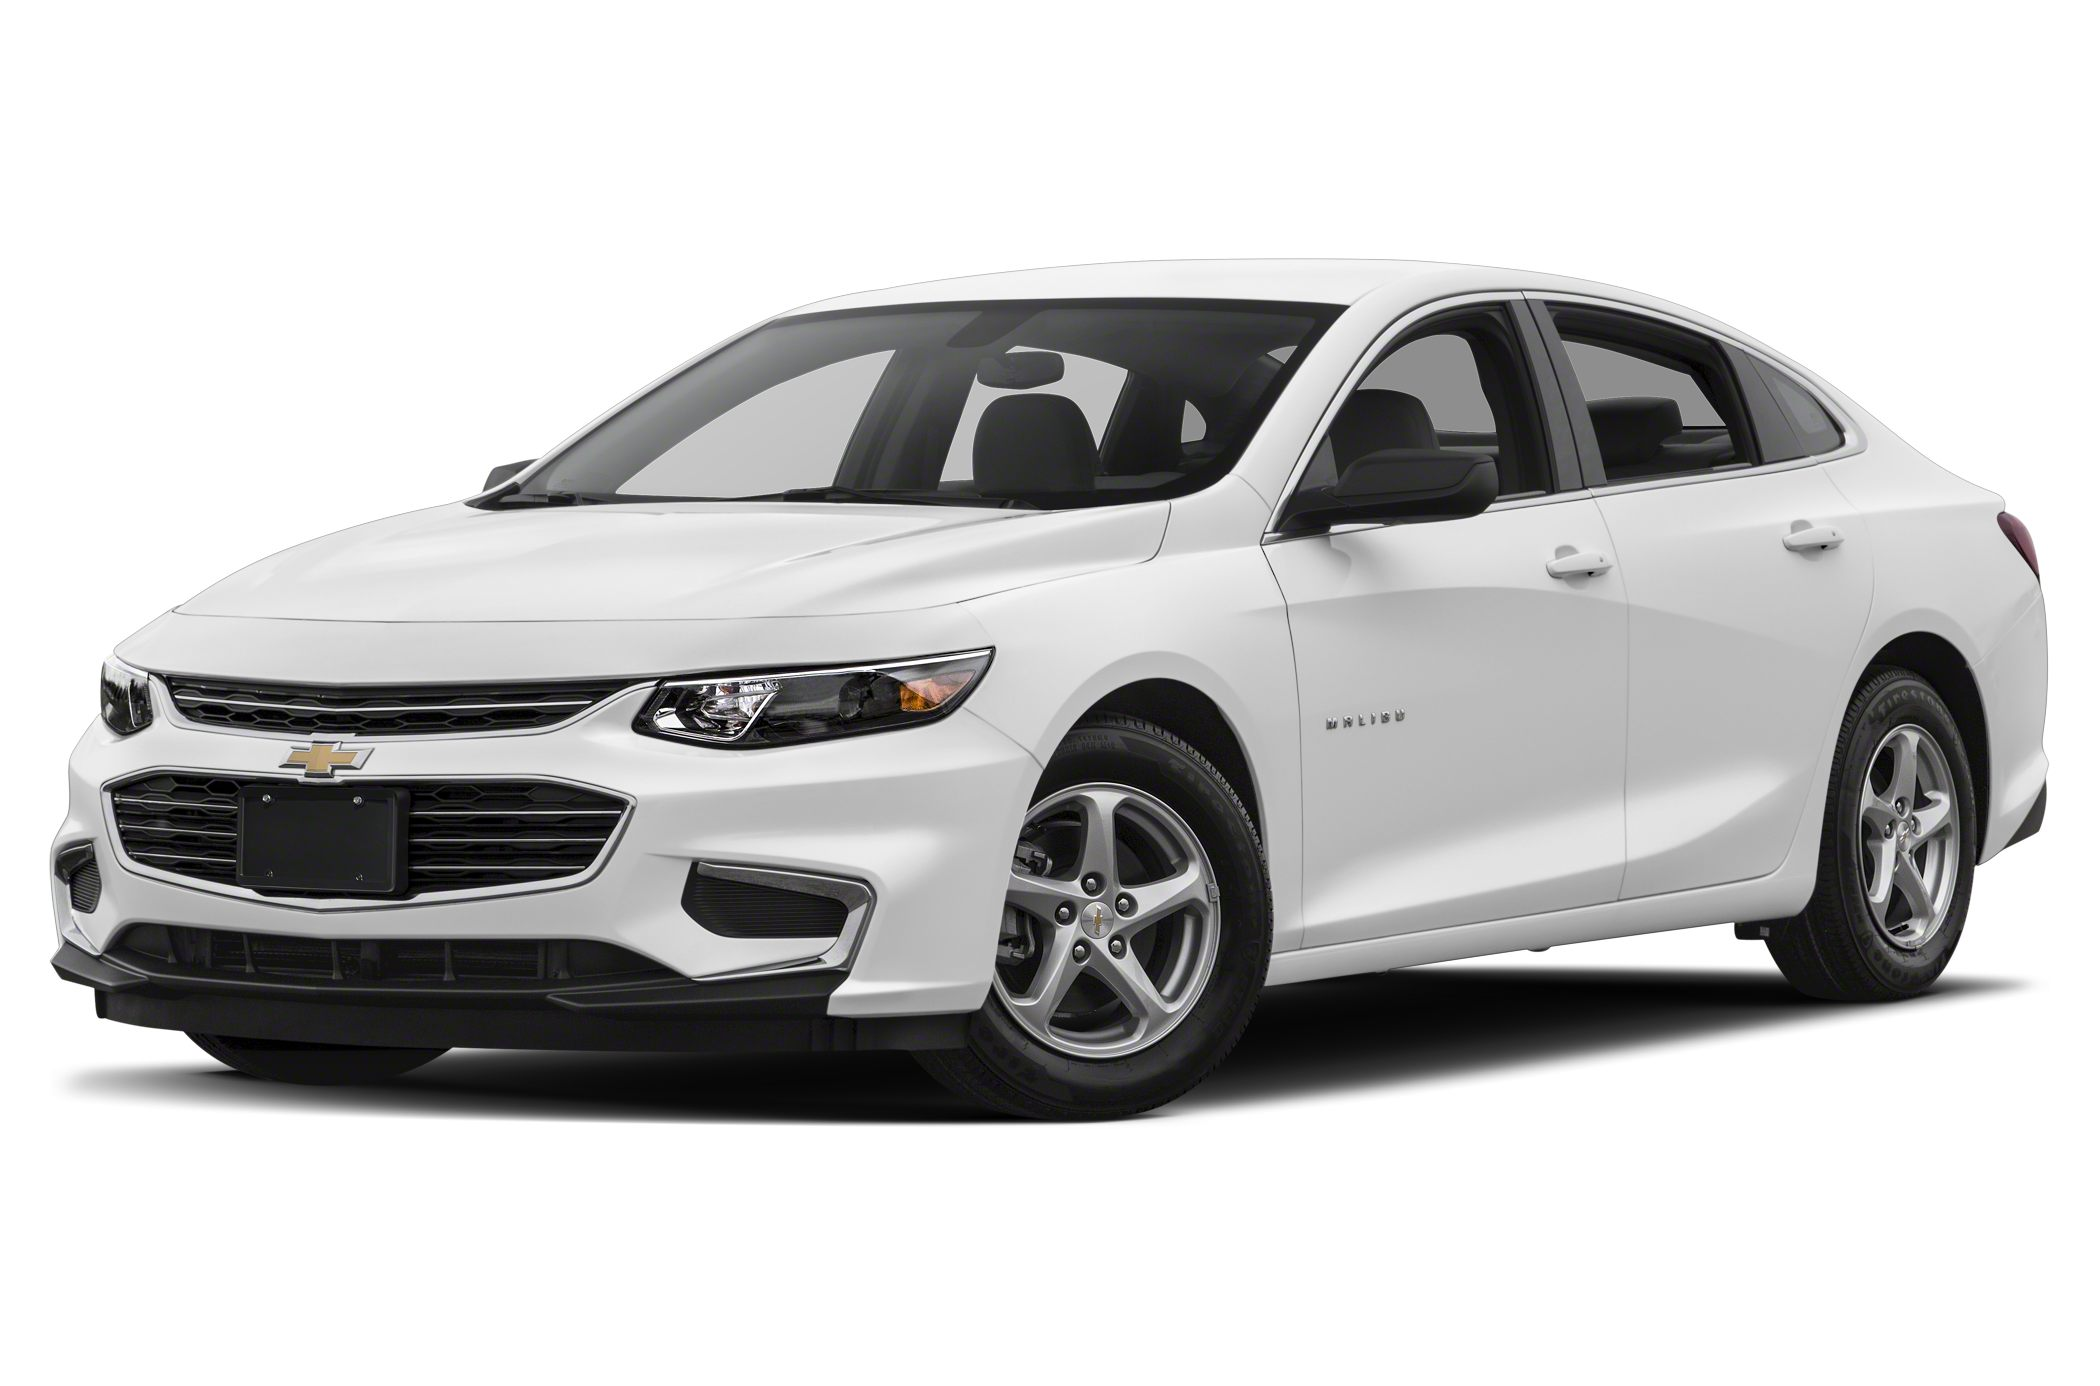 2018 chevrolet malibu 1ls for sale vin 1g1zb5st9jf